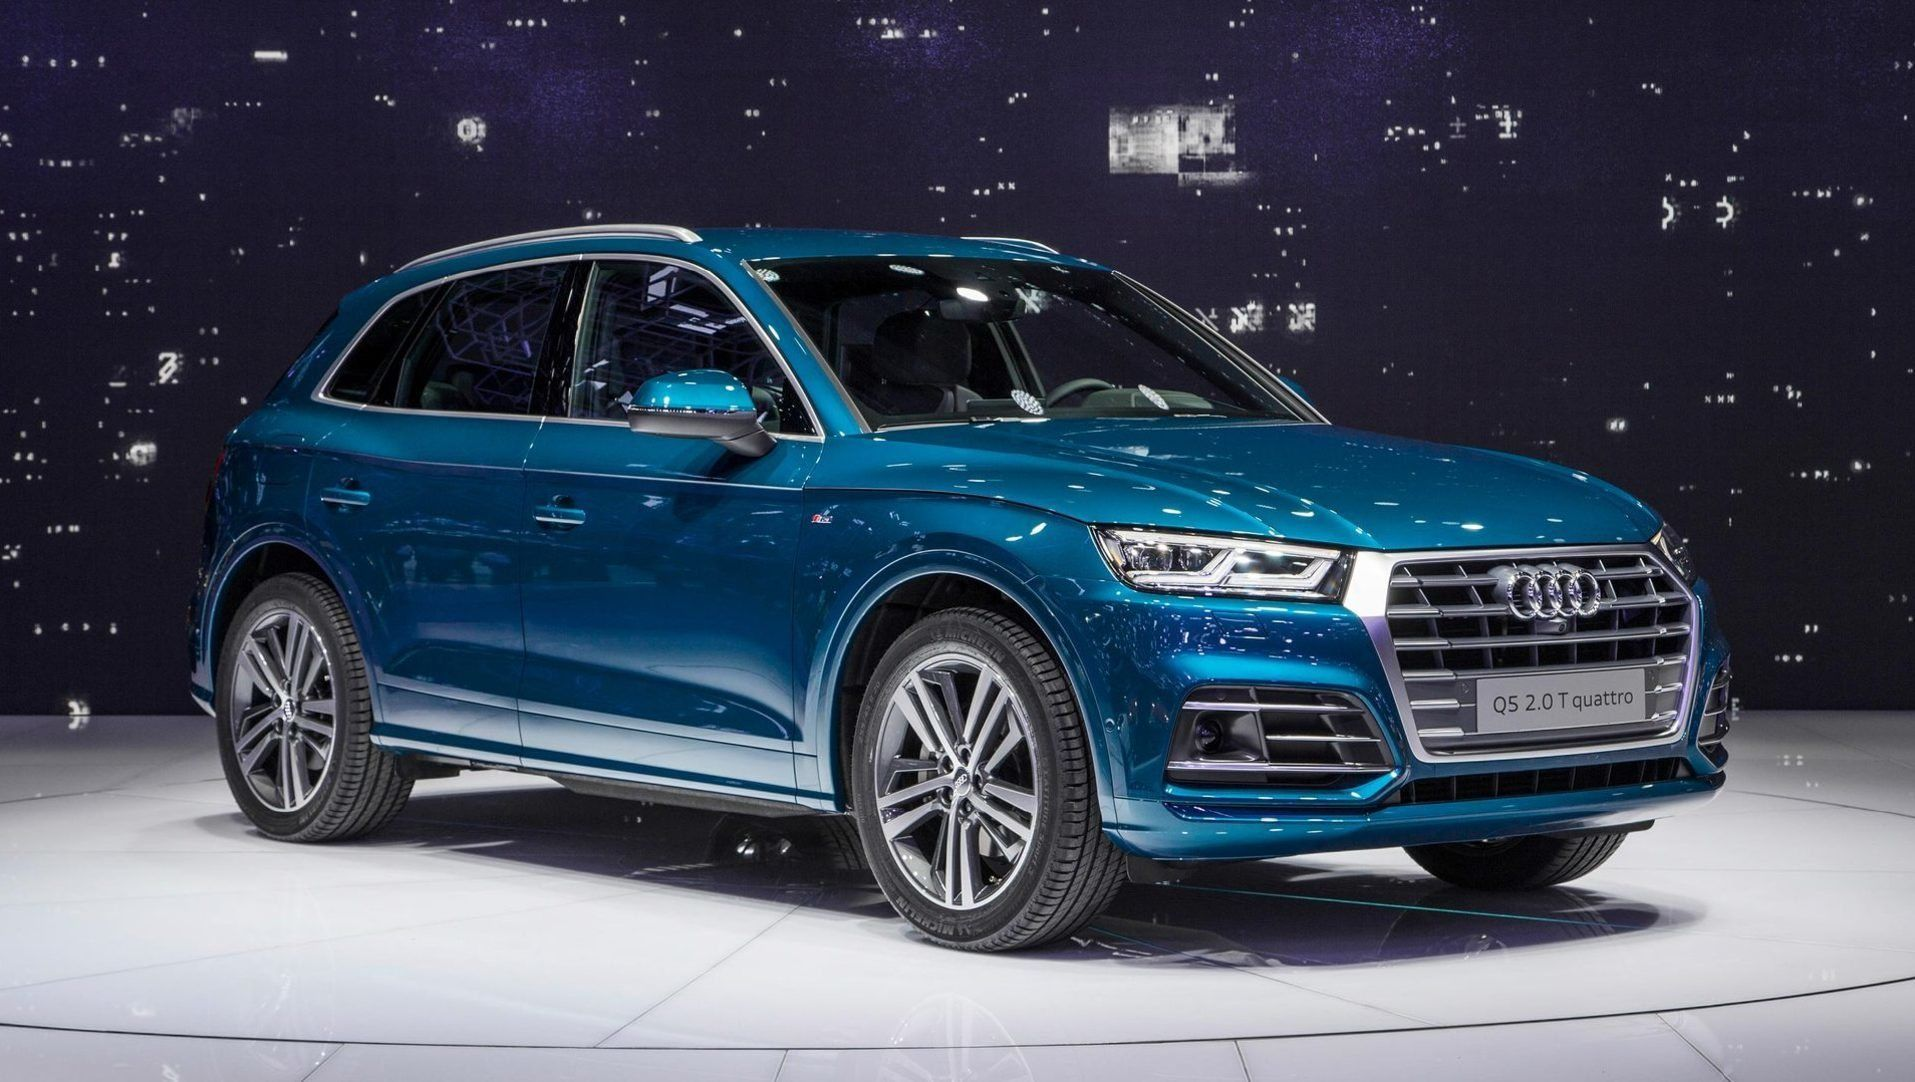 2020 Audi Q5 Wallpaper In 2020 Suv Audi Q5 Safest Suv